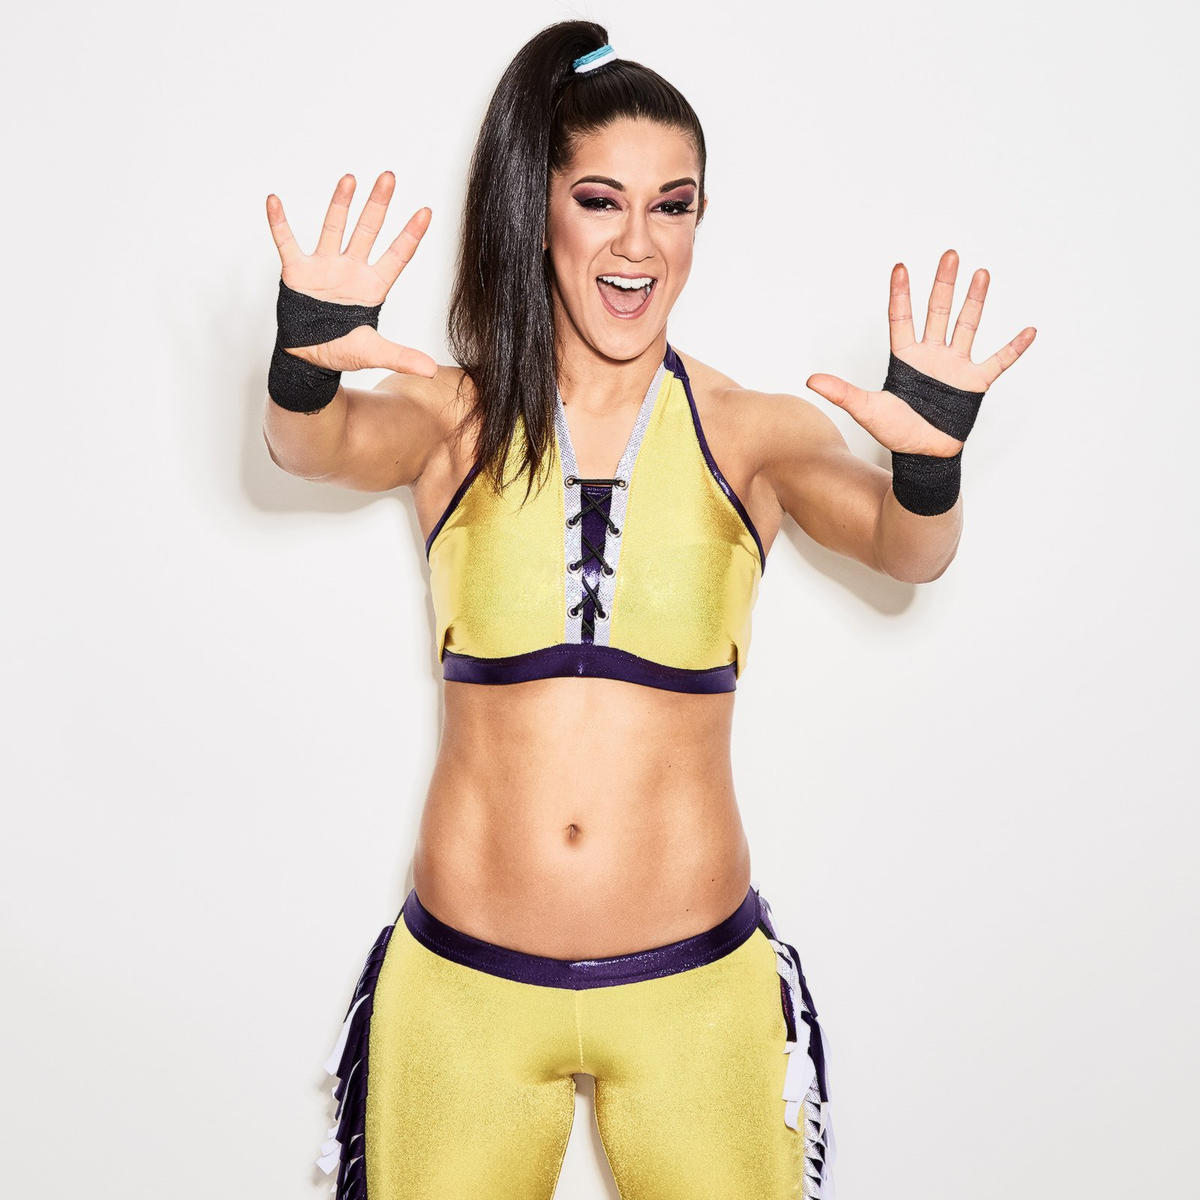 [IMG]http://www.wwe.com/f/styles/gallery_img_l/public/all/2018/03/10_RR_WOMEN_01282018kb_0357--33a1bf29895466c0be736ee34761d9a0.jpg[/IMG]